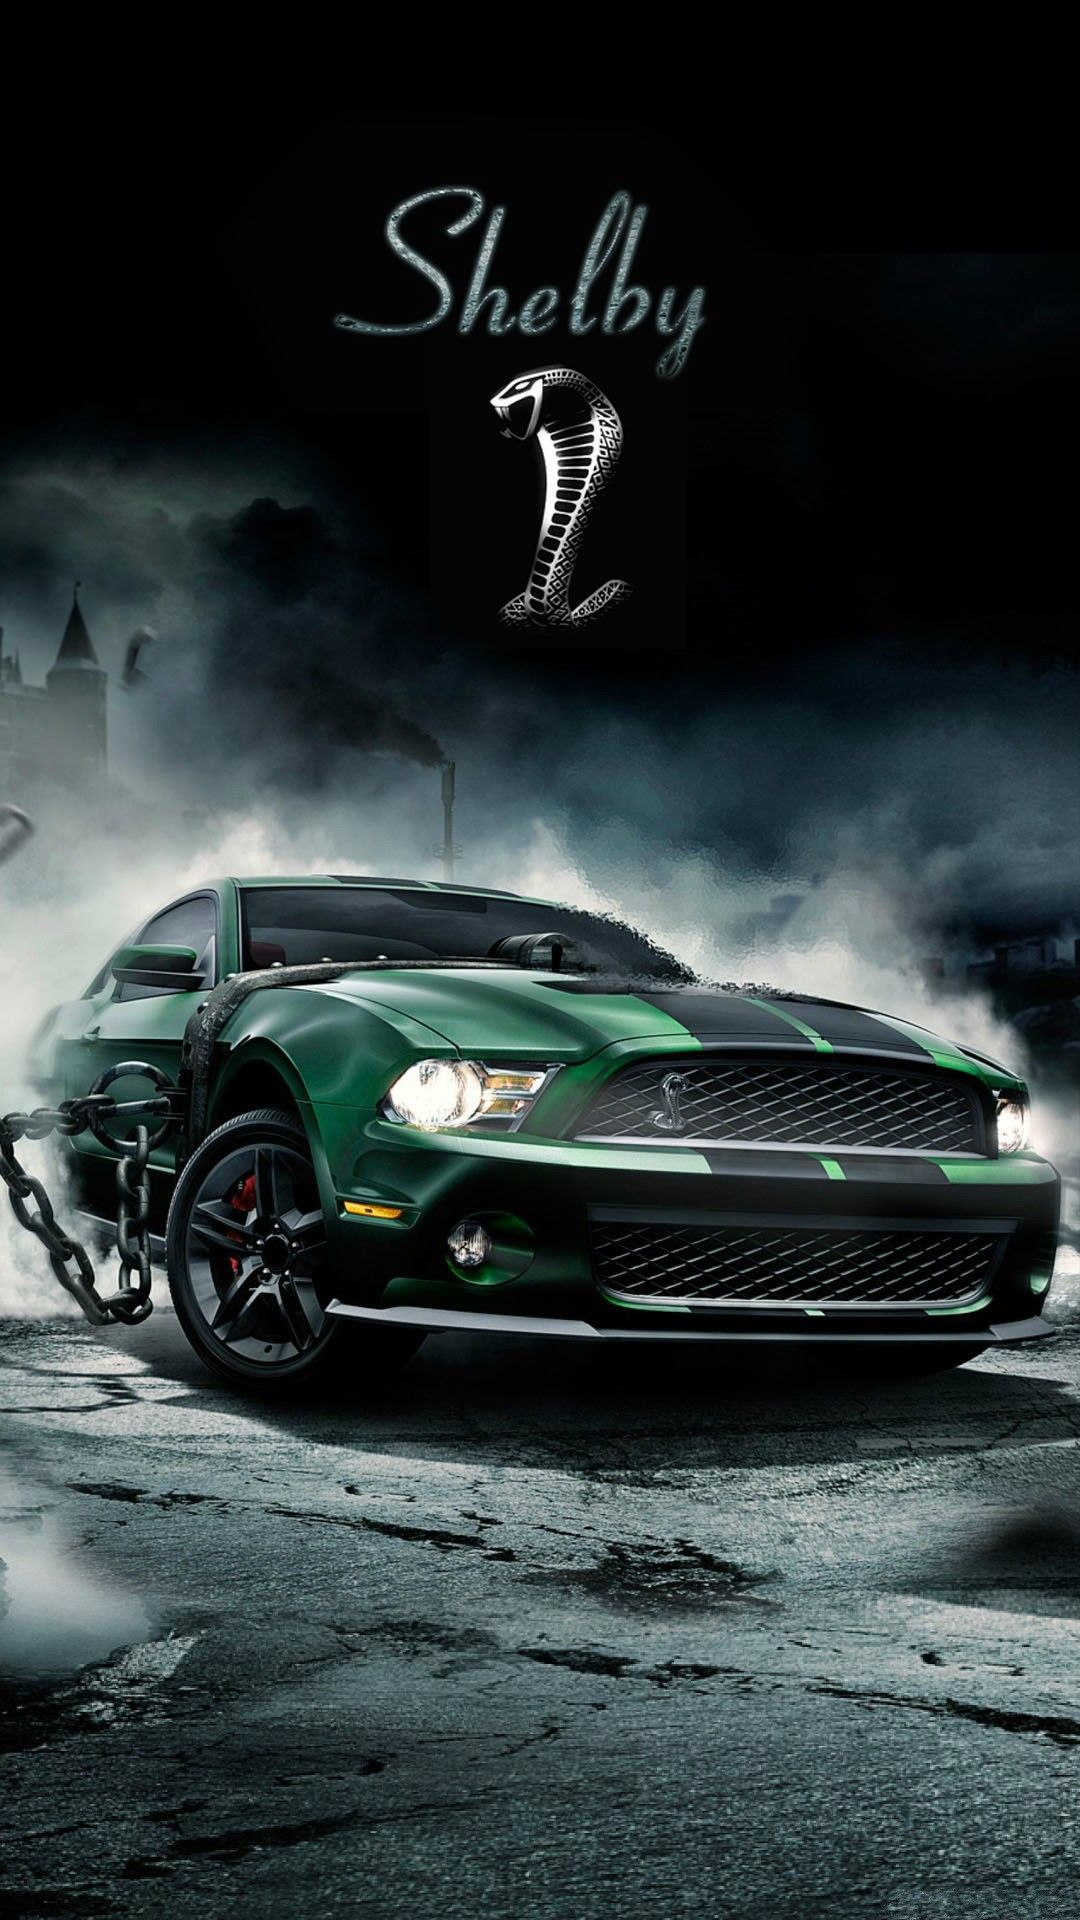 Cars Mobile Full Hd Wallpapers 1080x1920 In 2021 Mustang Wallpaper Car Iphone Wallpaper Old Muscle Cars